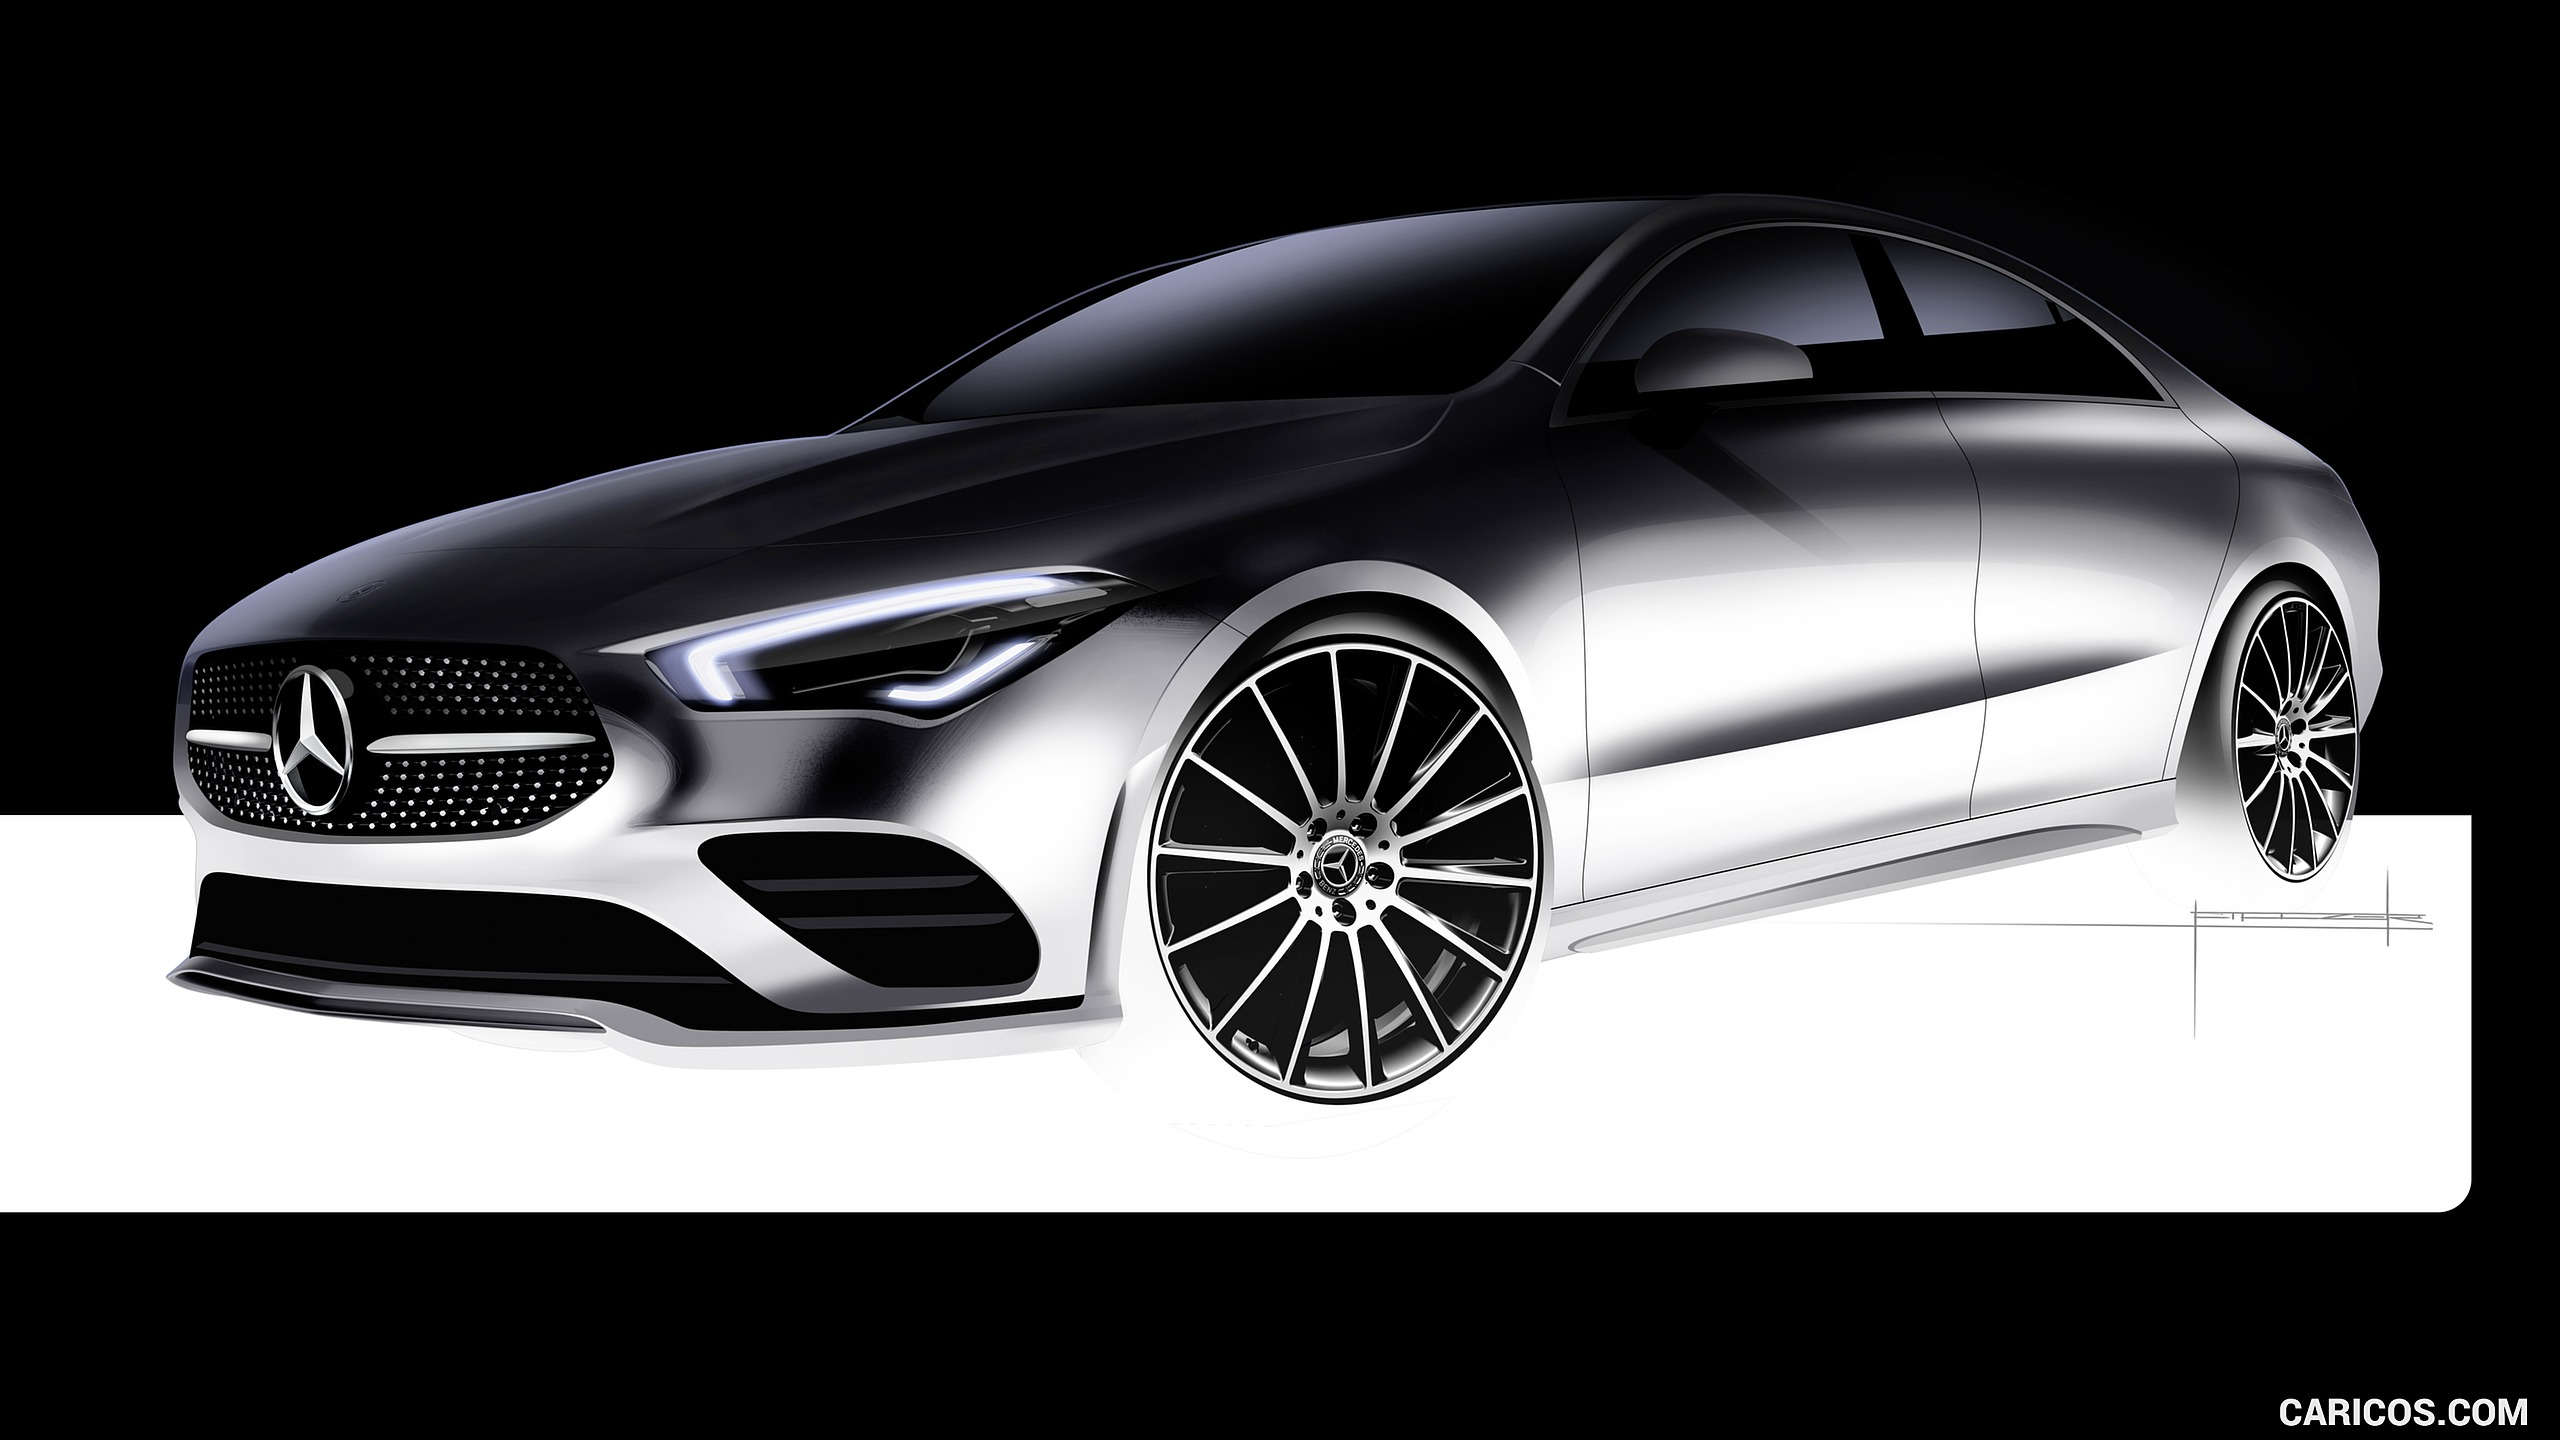 2020 Mercedes Benz CLA 250 Coupe   Design Sketch HD Wallpaper 48 2560x1440